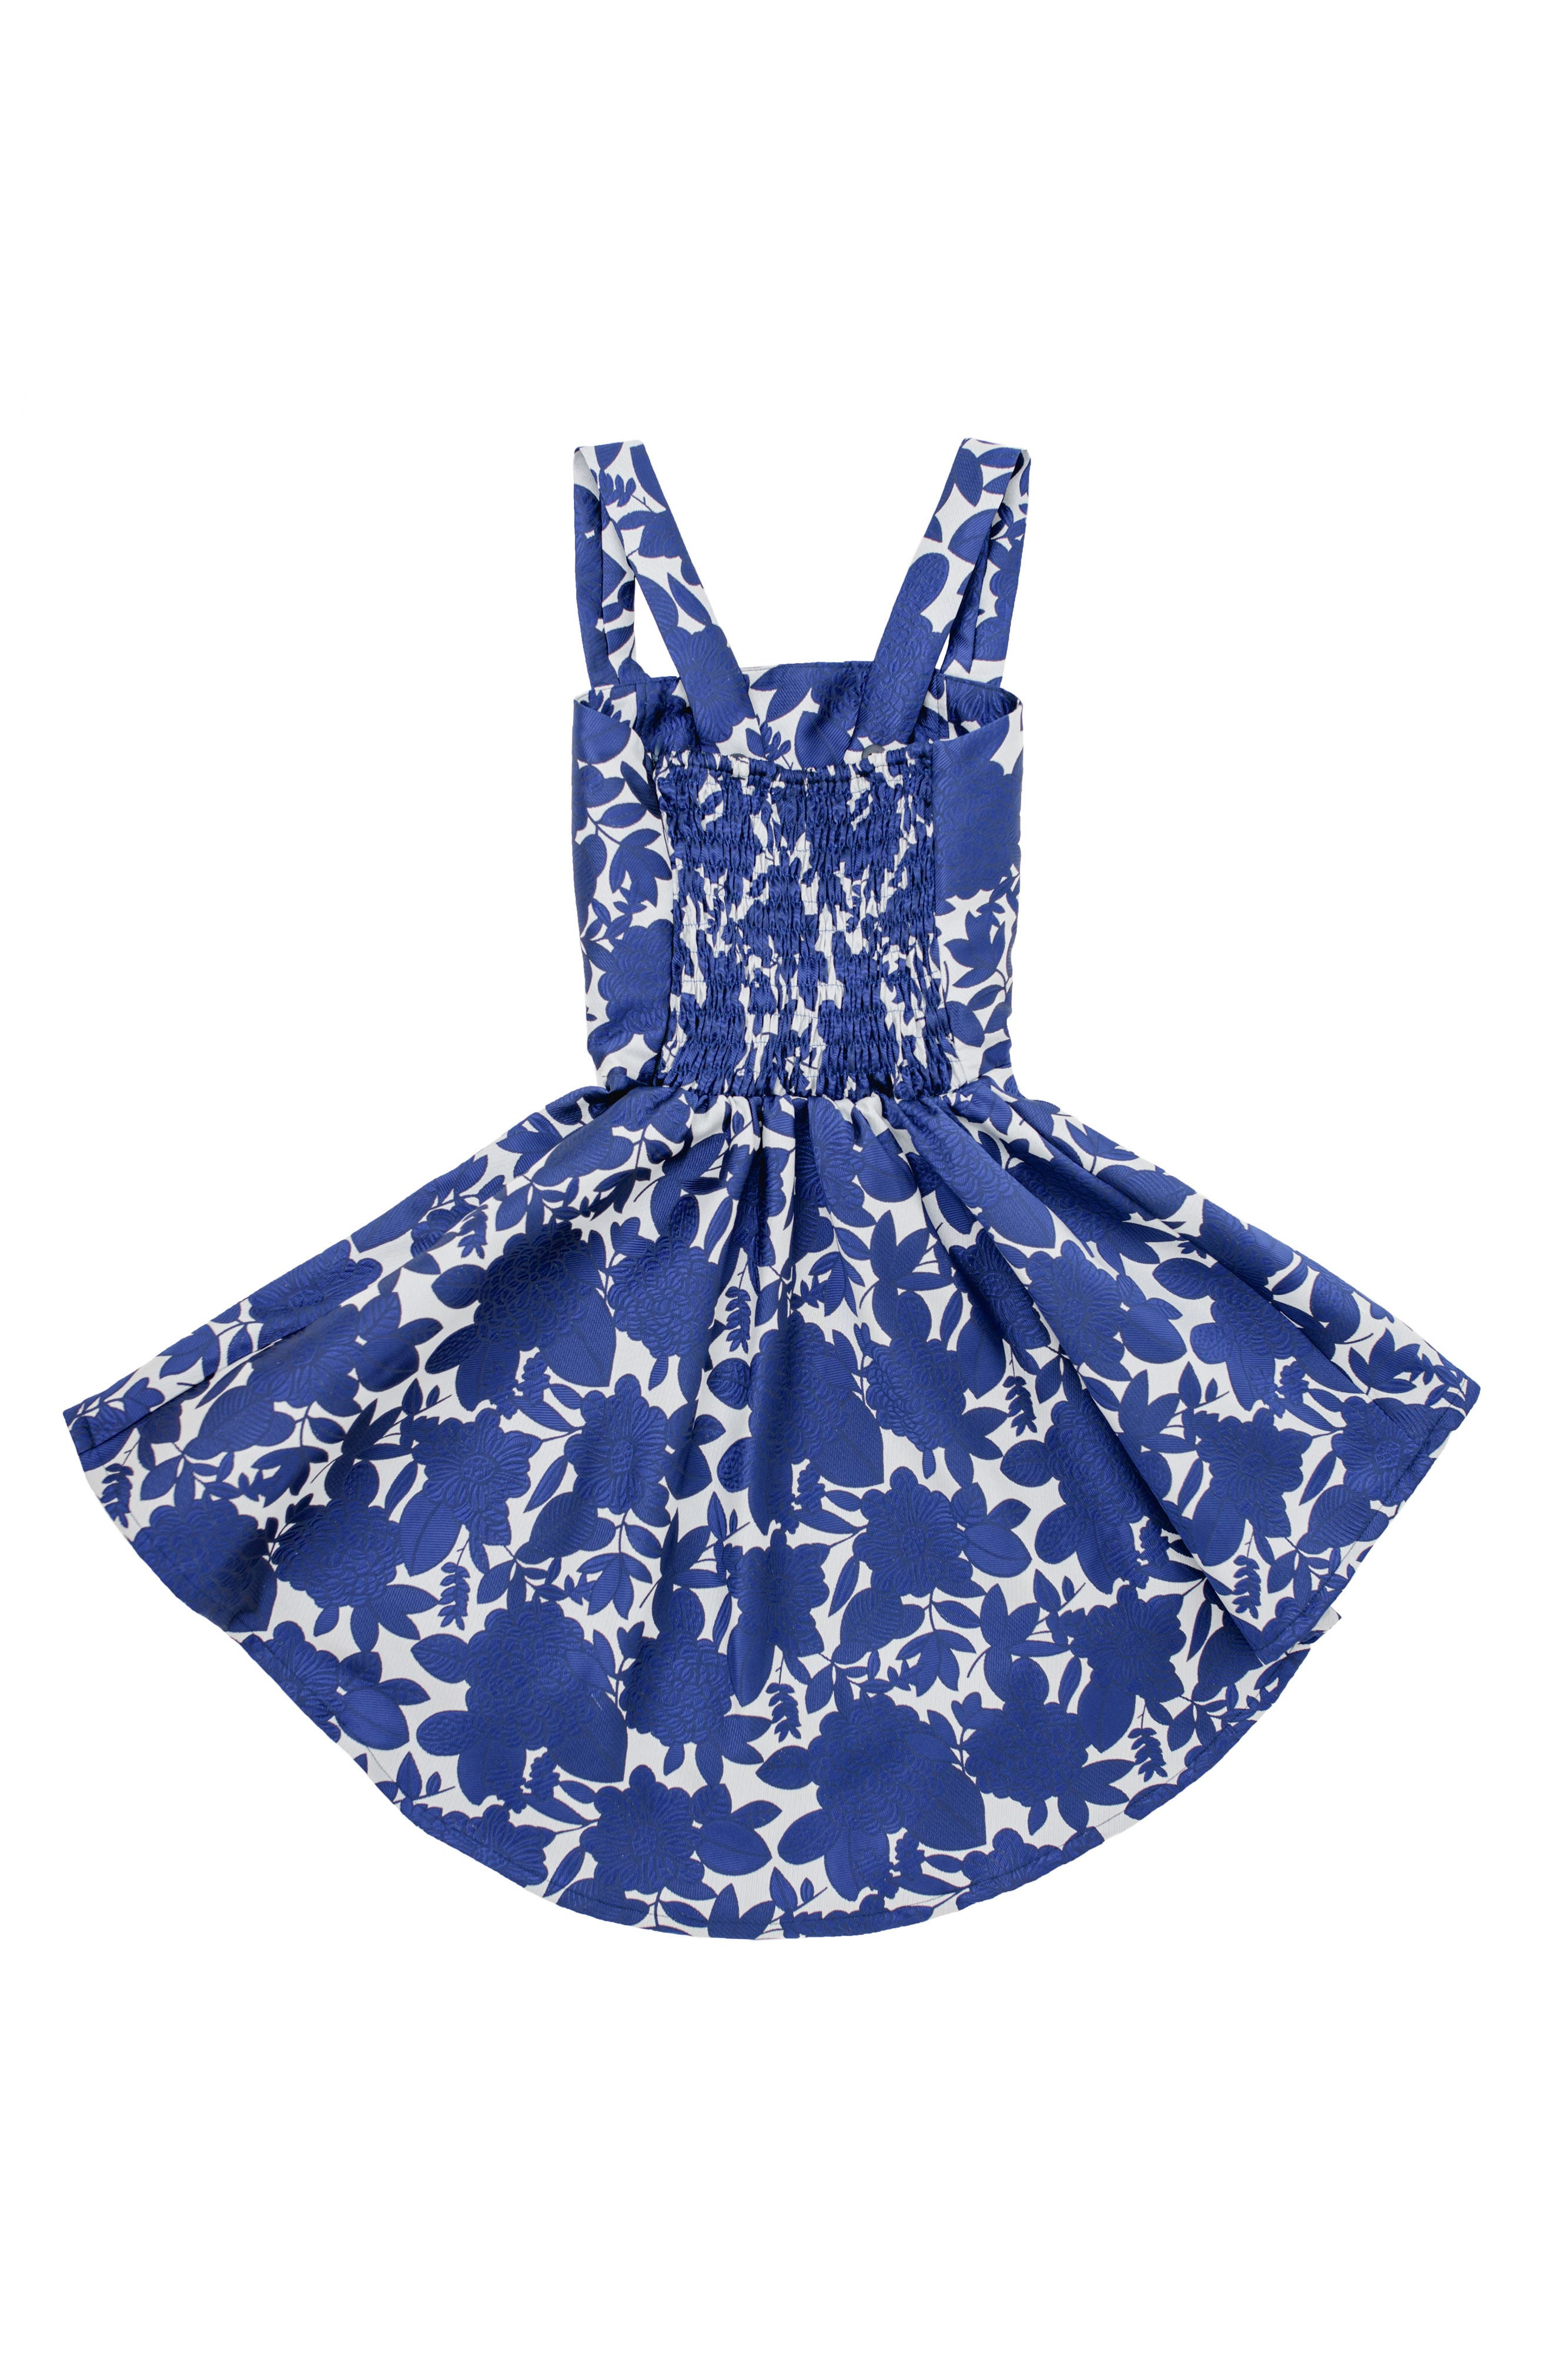 STELLA M'LIA, Fit and Flare High/Low Skater Dress, Alternate thumbnail 2, color, NAVY